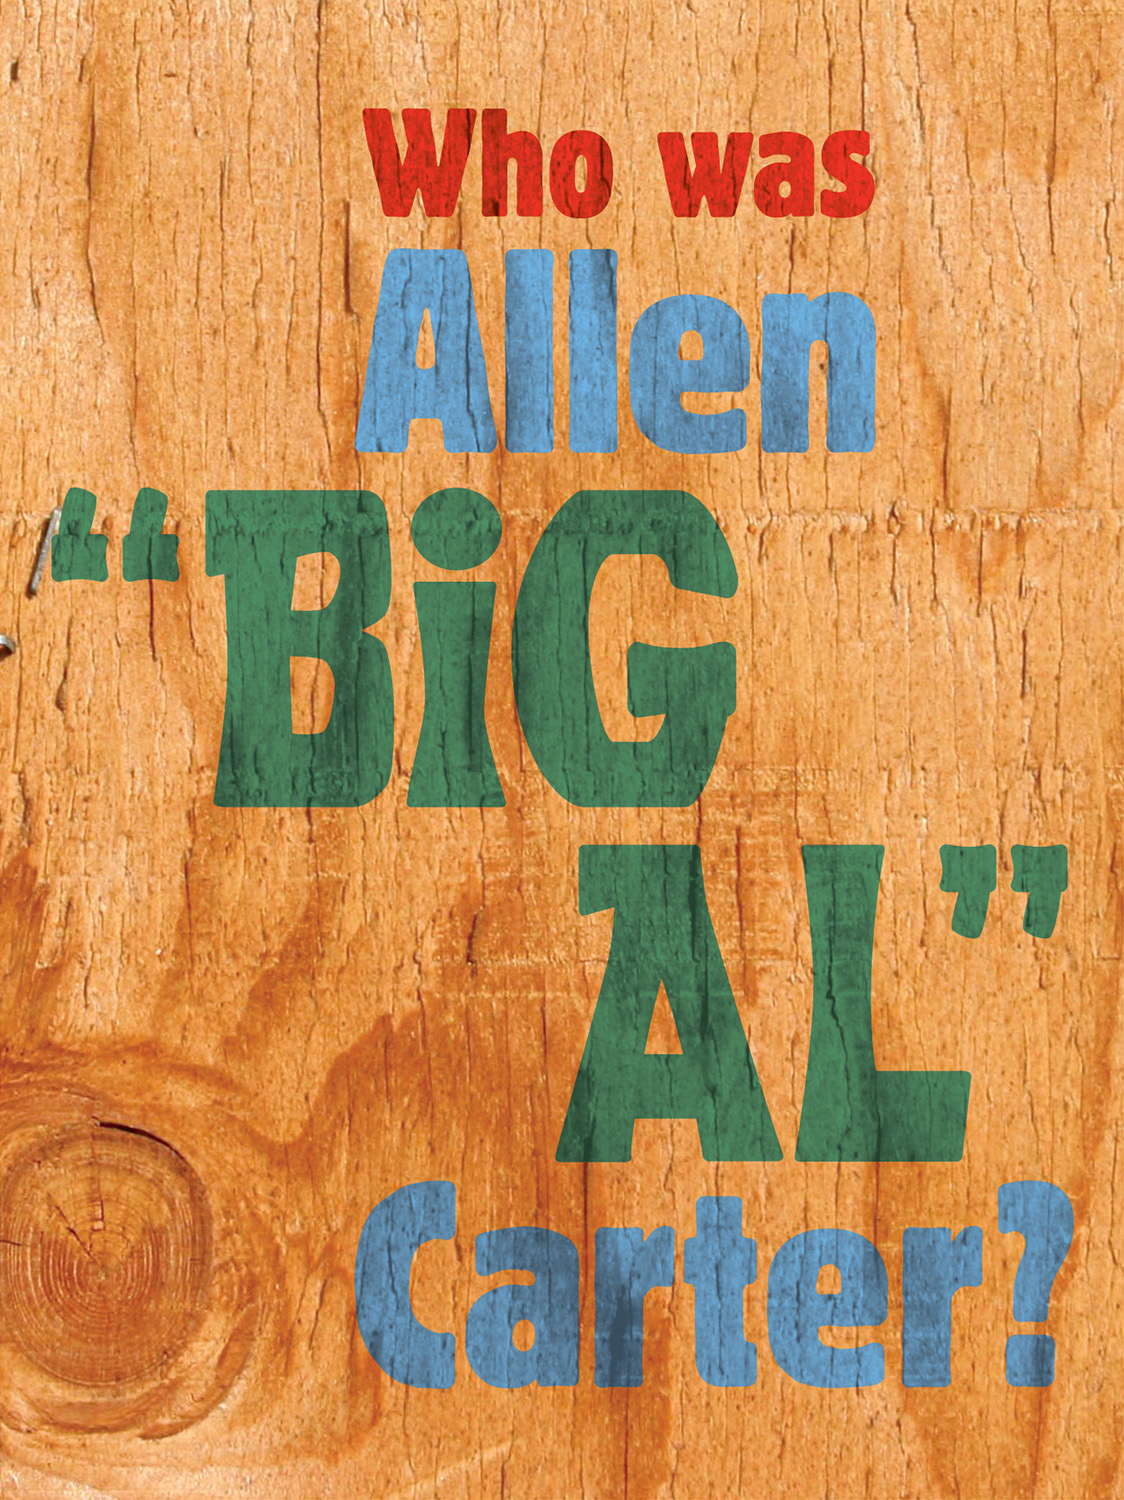 Allen B. Carter exhibit brochure